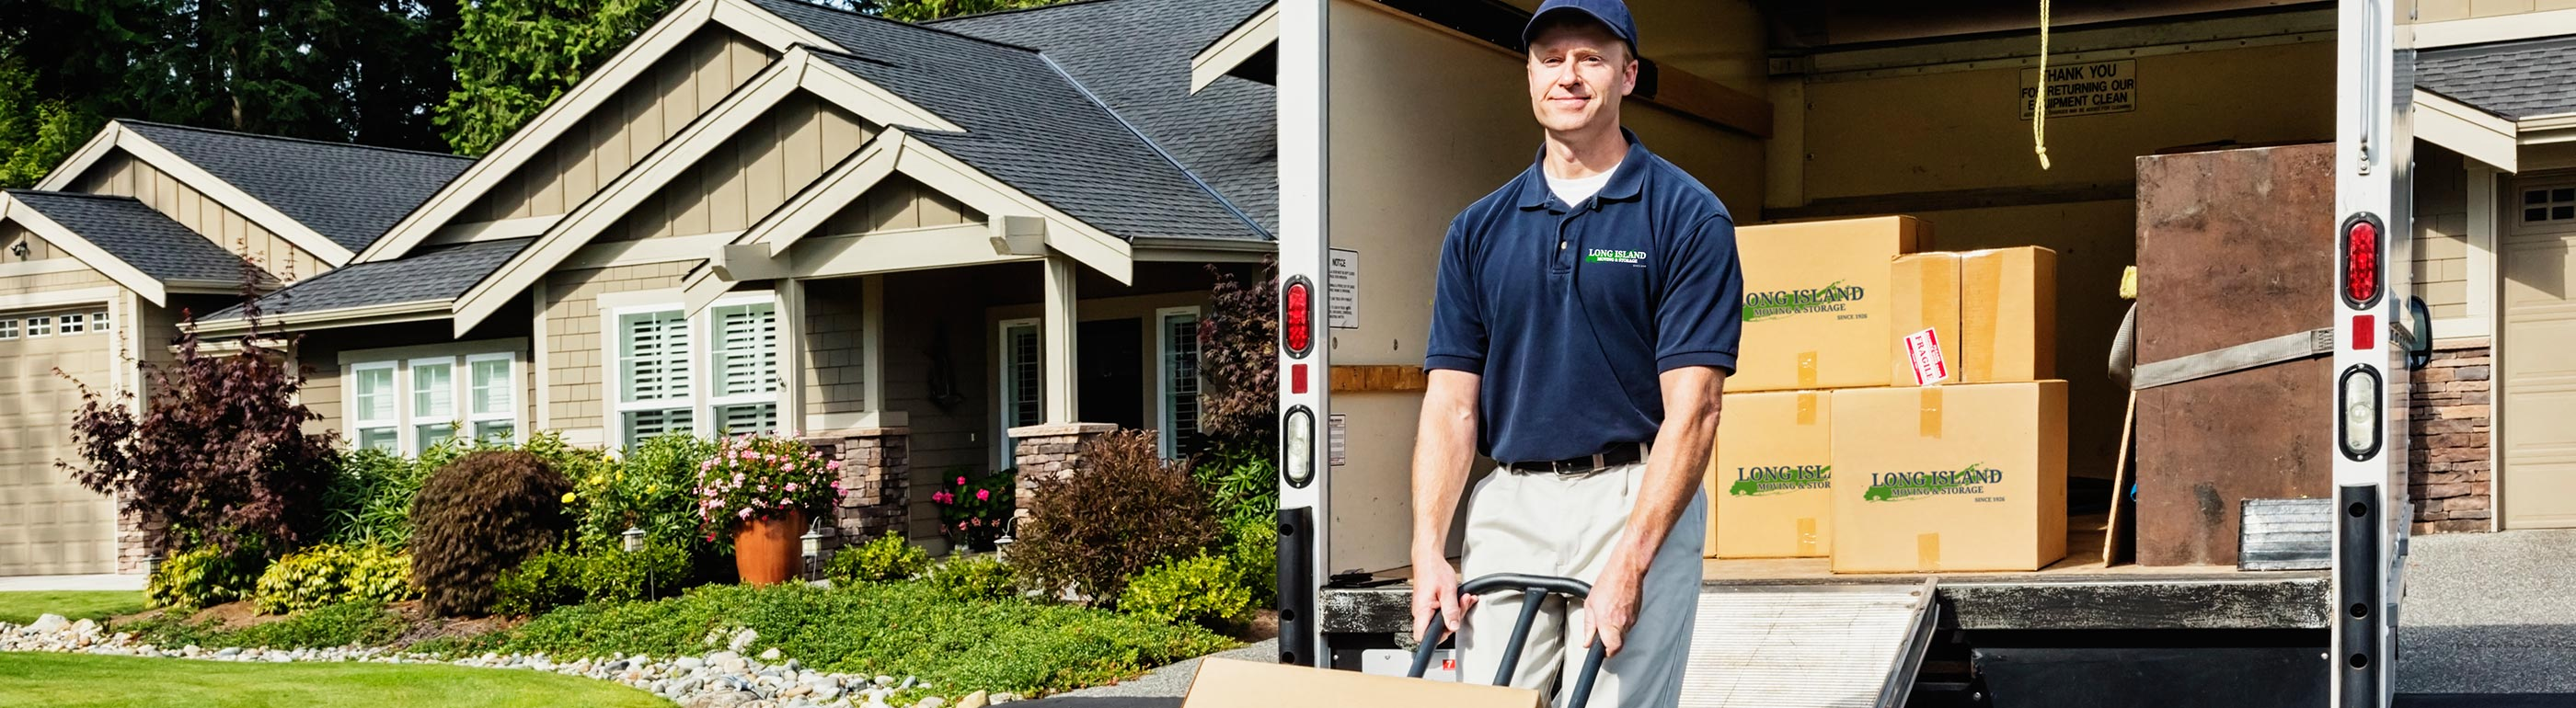 residential movers packing up moving van